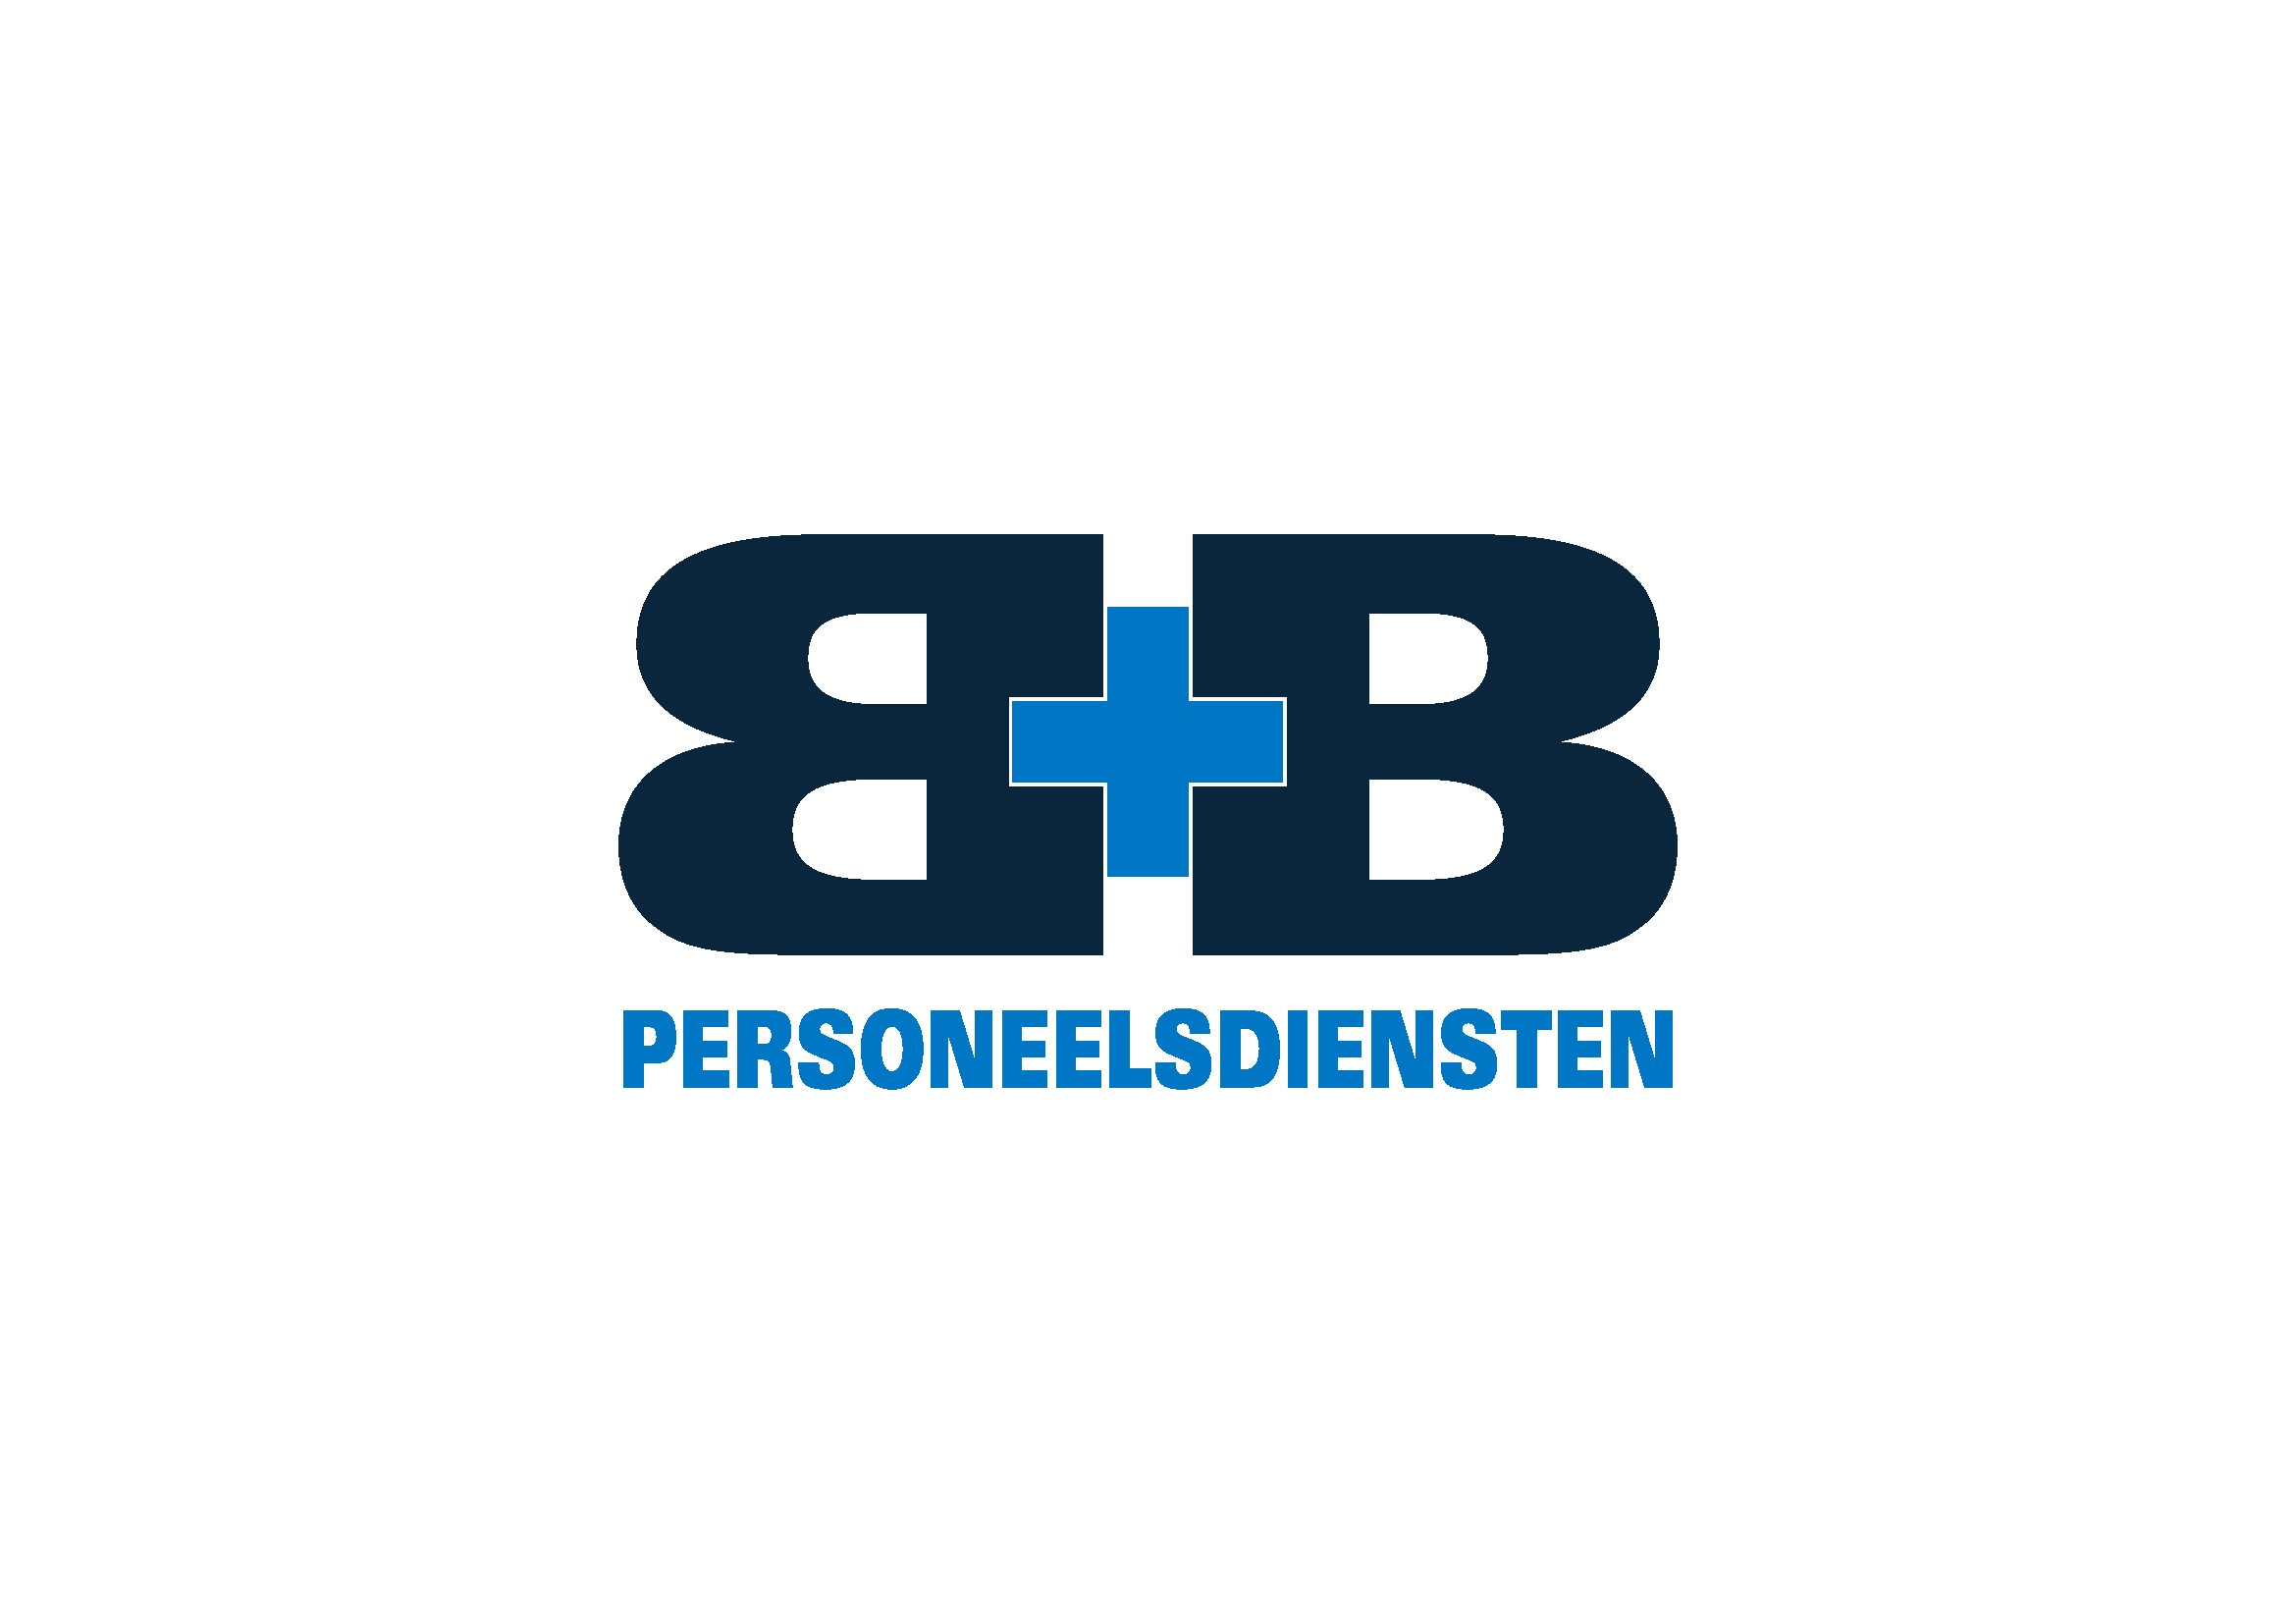 16 BB Personeelsdiensten - logo